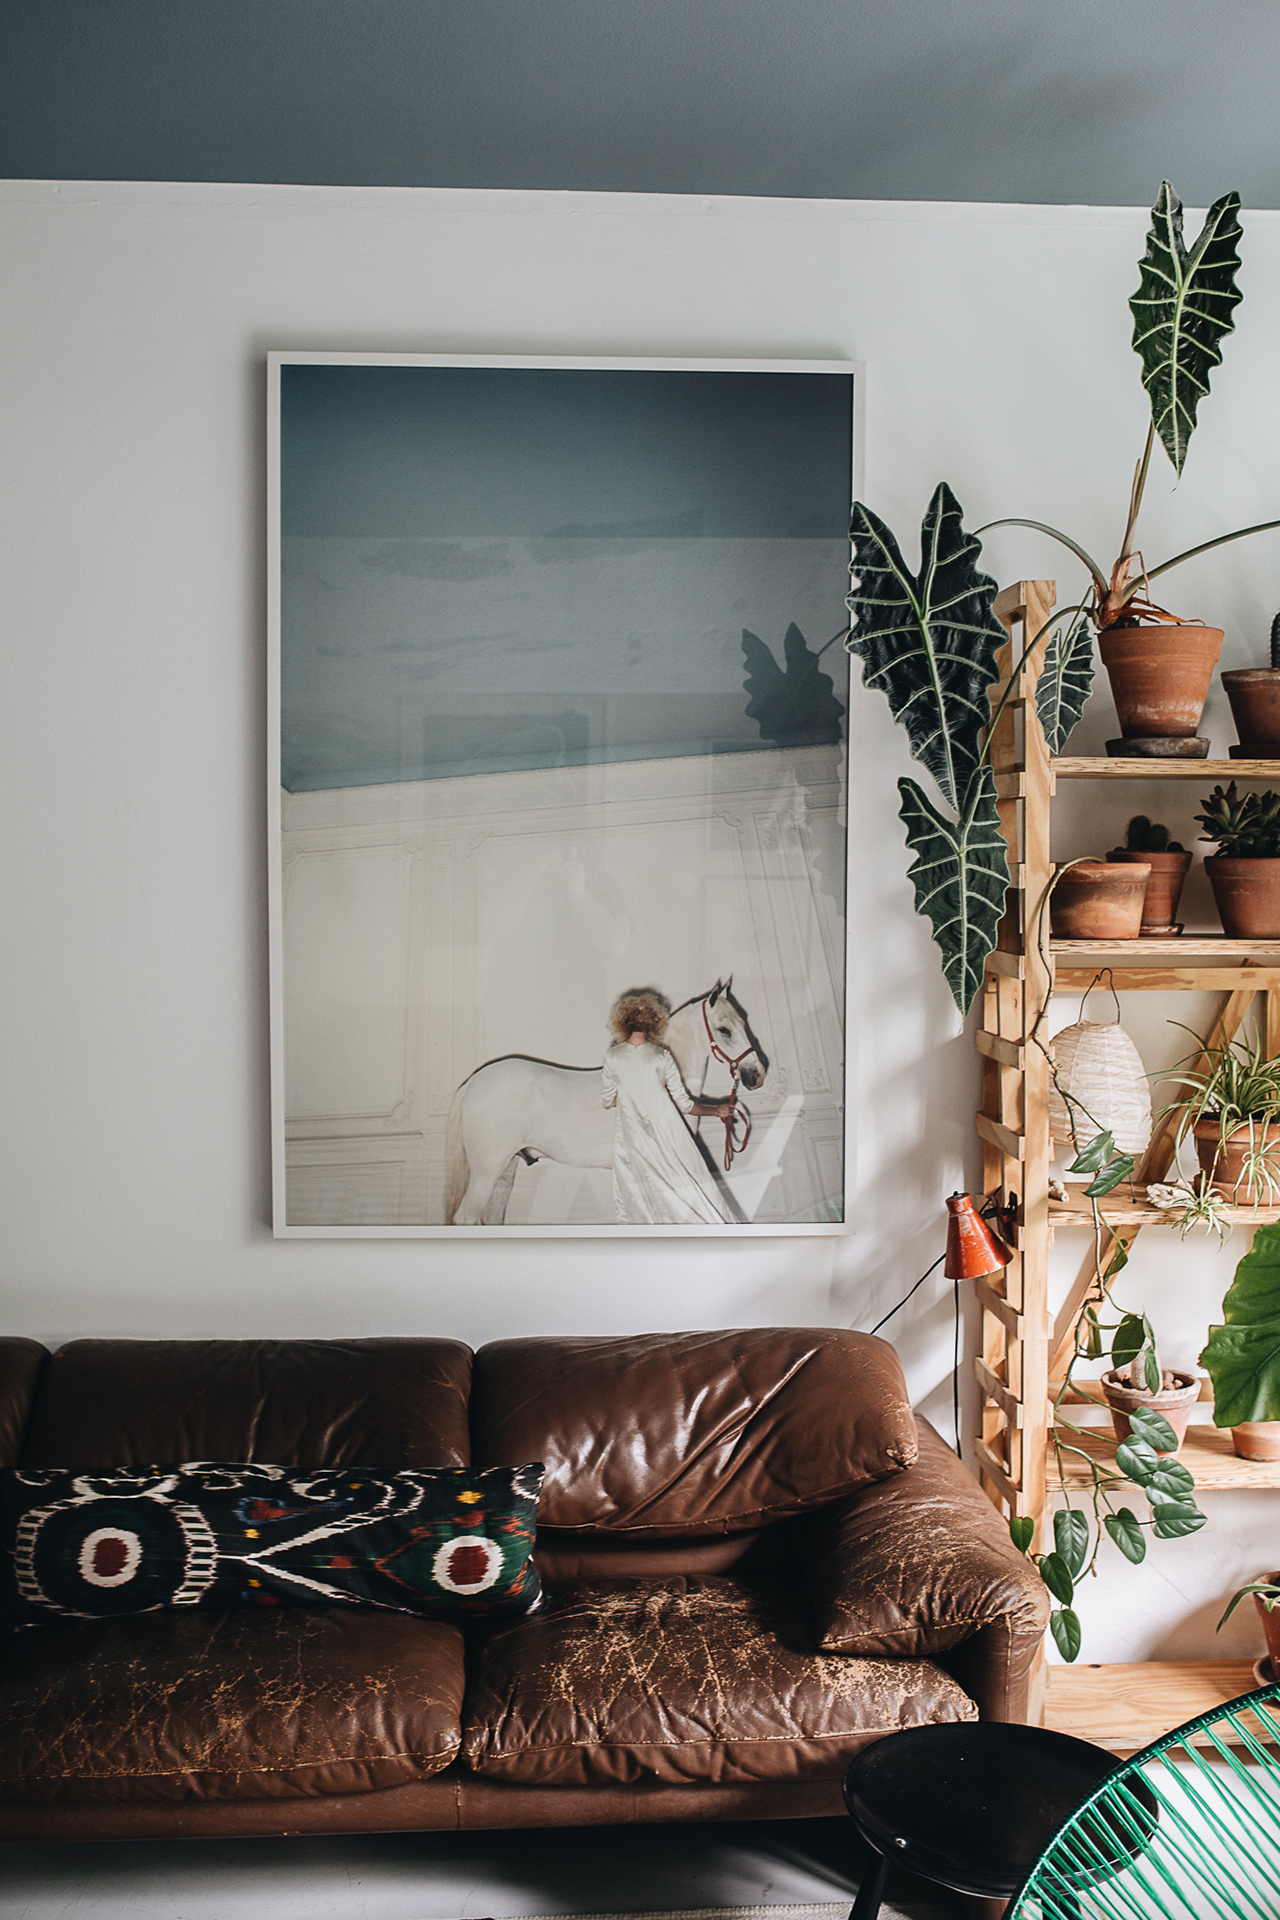 The home of Maurício Arruda in São Paulo, Brazil, from PLANT TRIBE (Living happily ever after with plants) by Igor Josifovic & Judith de Graaff. Photography by Jules Villbrandt for Urban Jungle Bloggers. © ABRAMS Books